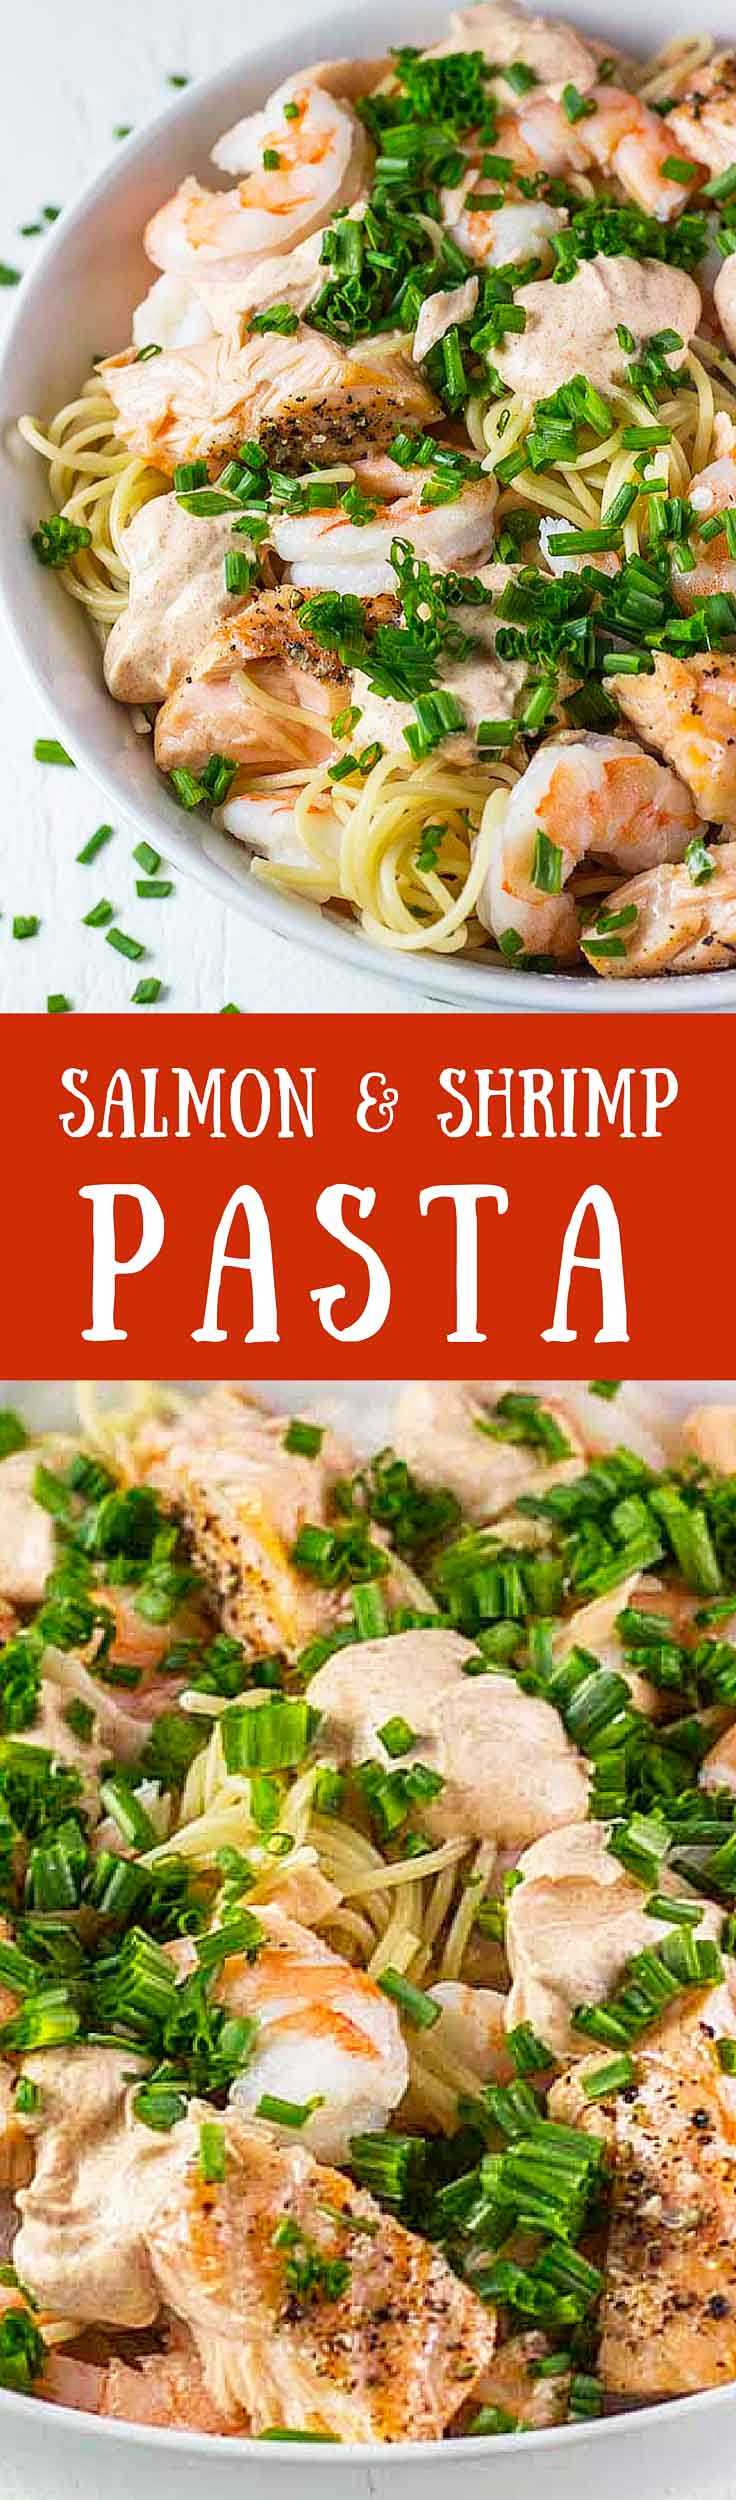 This Salmon & Shrimp Pasta is my favorite easy and healthy pasta recipe. It takes less than 20 minutes to make and is full of delicious protein and healthy fats. #healthyeating #healthyrecipes #salmonrecipes #pastarecipes #shrimp